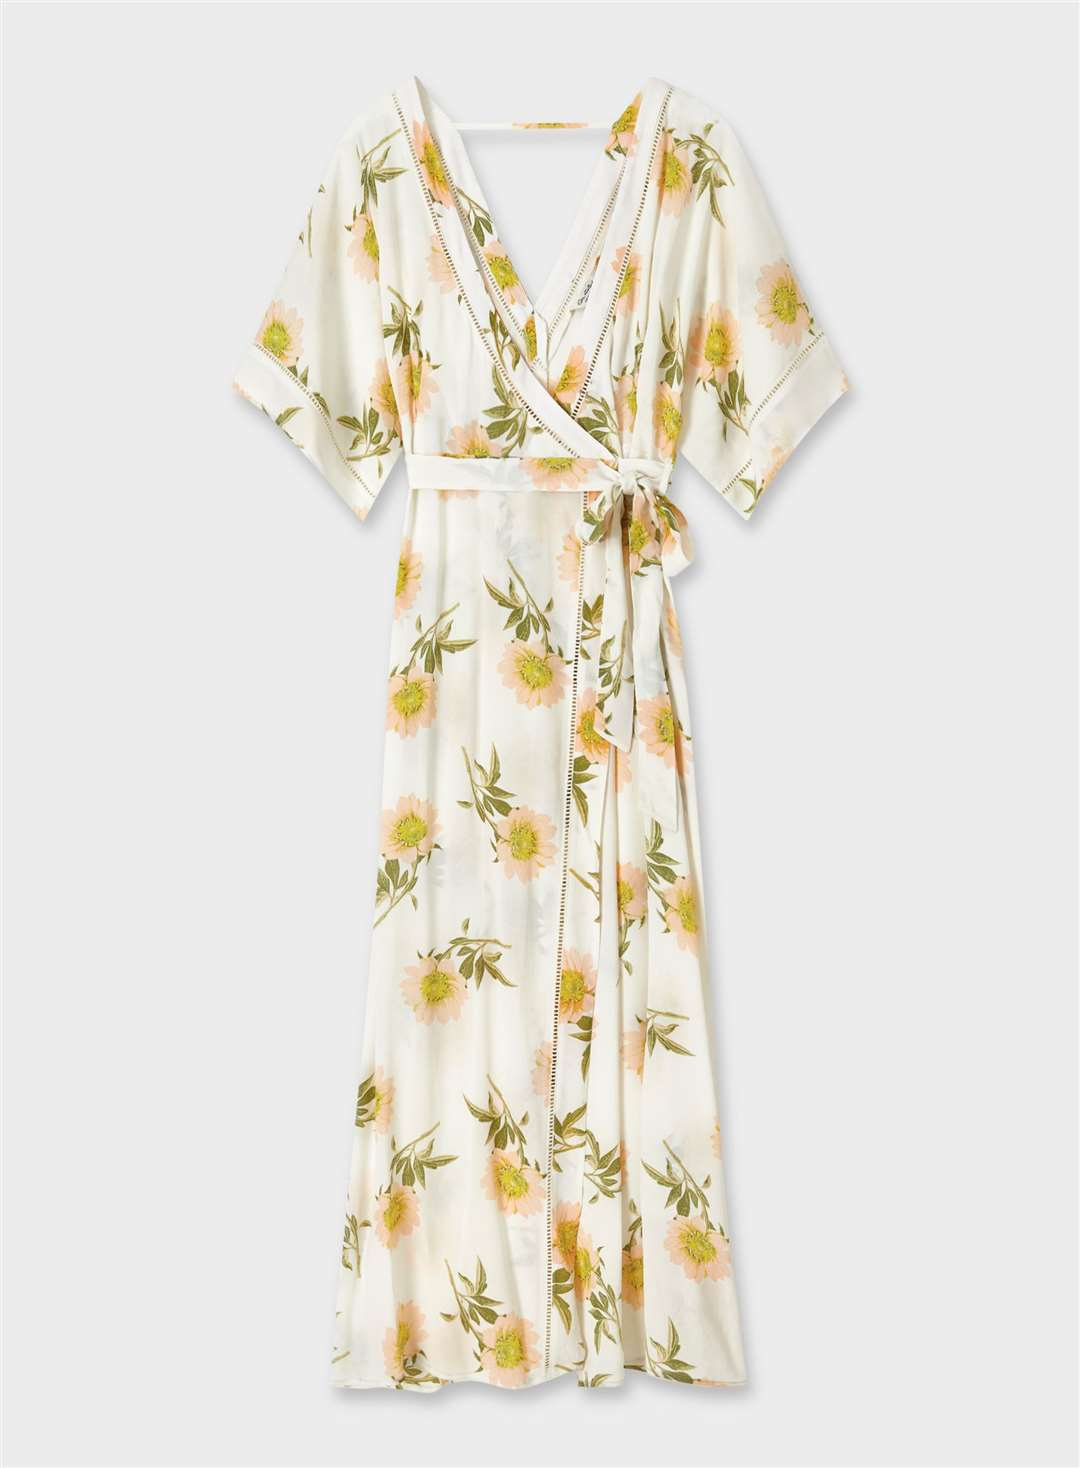 STATEMENT DETAILS Miss Selfridge Ivory Floral Print Kimono Sleeve Maxi Dress, £45 (13640689)